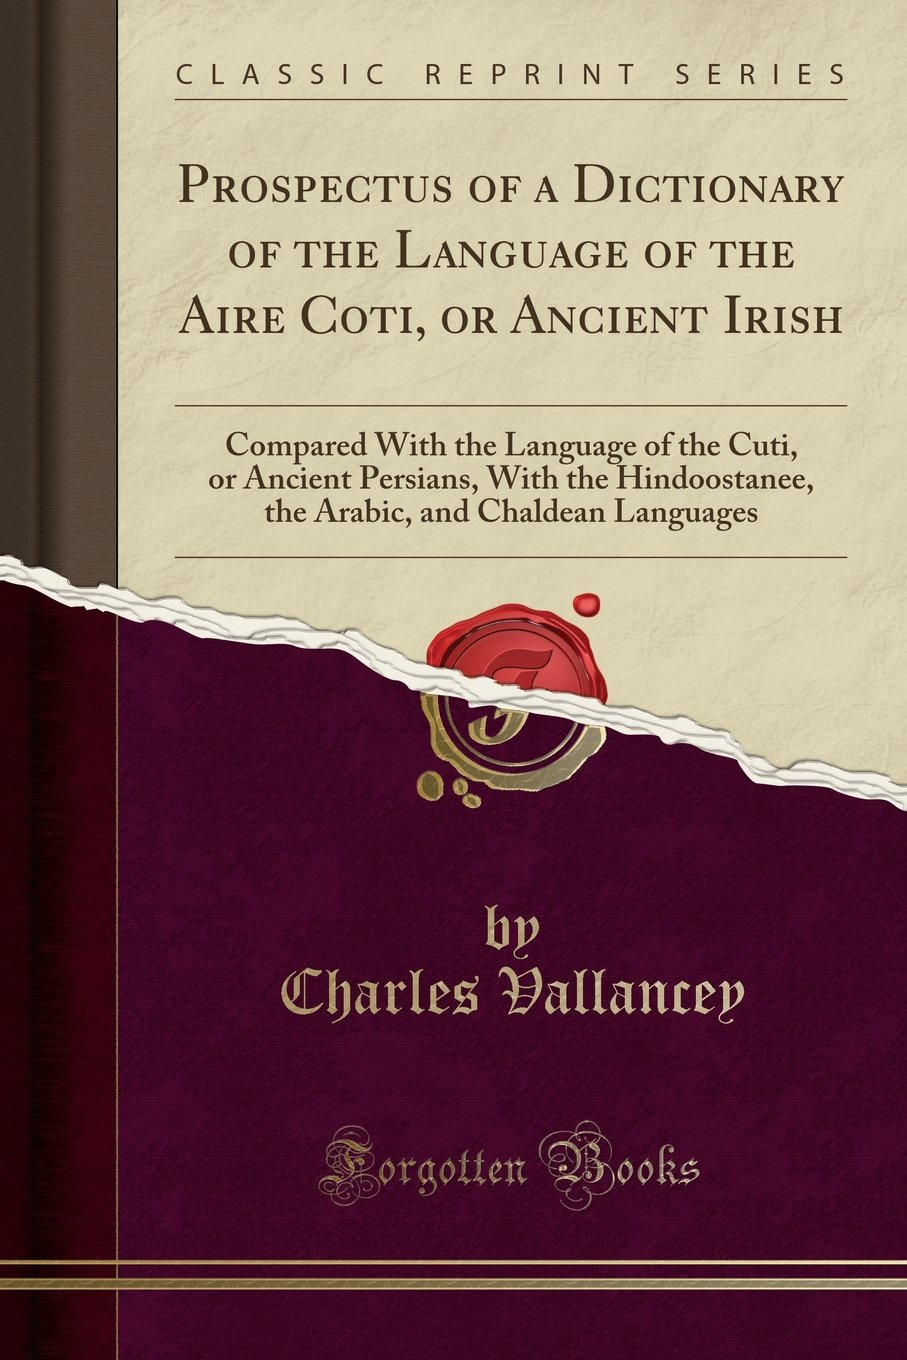 Prospectus of a Dictionary of the Language of the Aire Coti, or Ancient Irish: Compared With the Language of the Cuti, or Ancient Persians, With the ... and Chaldean Languages (Classic Reprint)